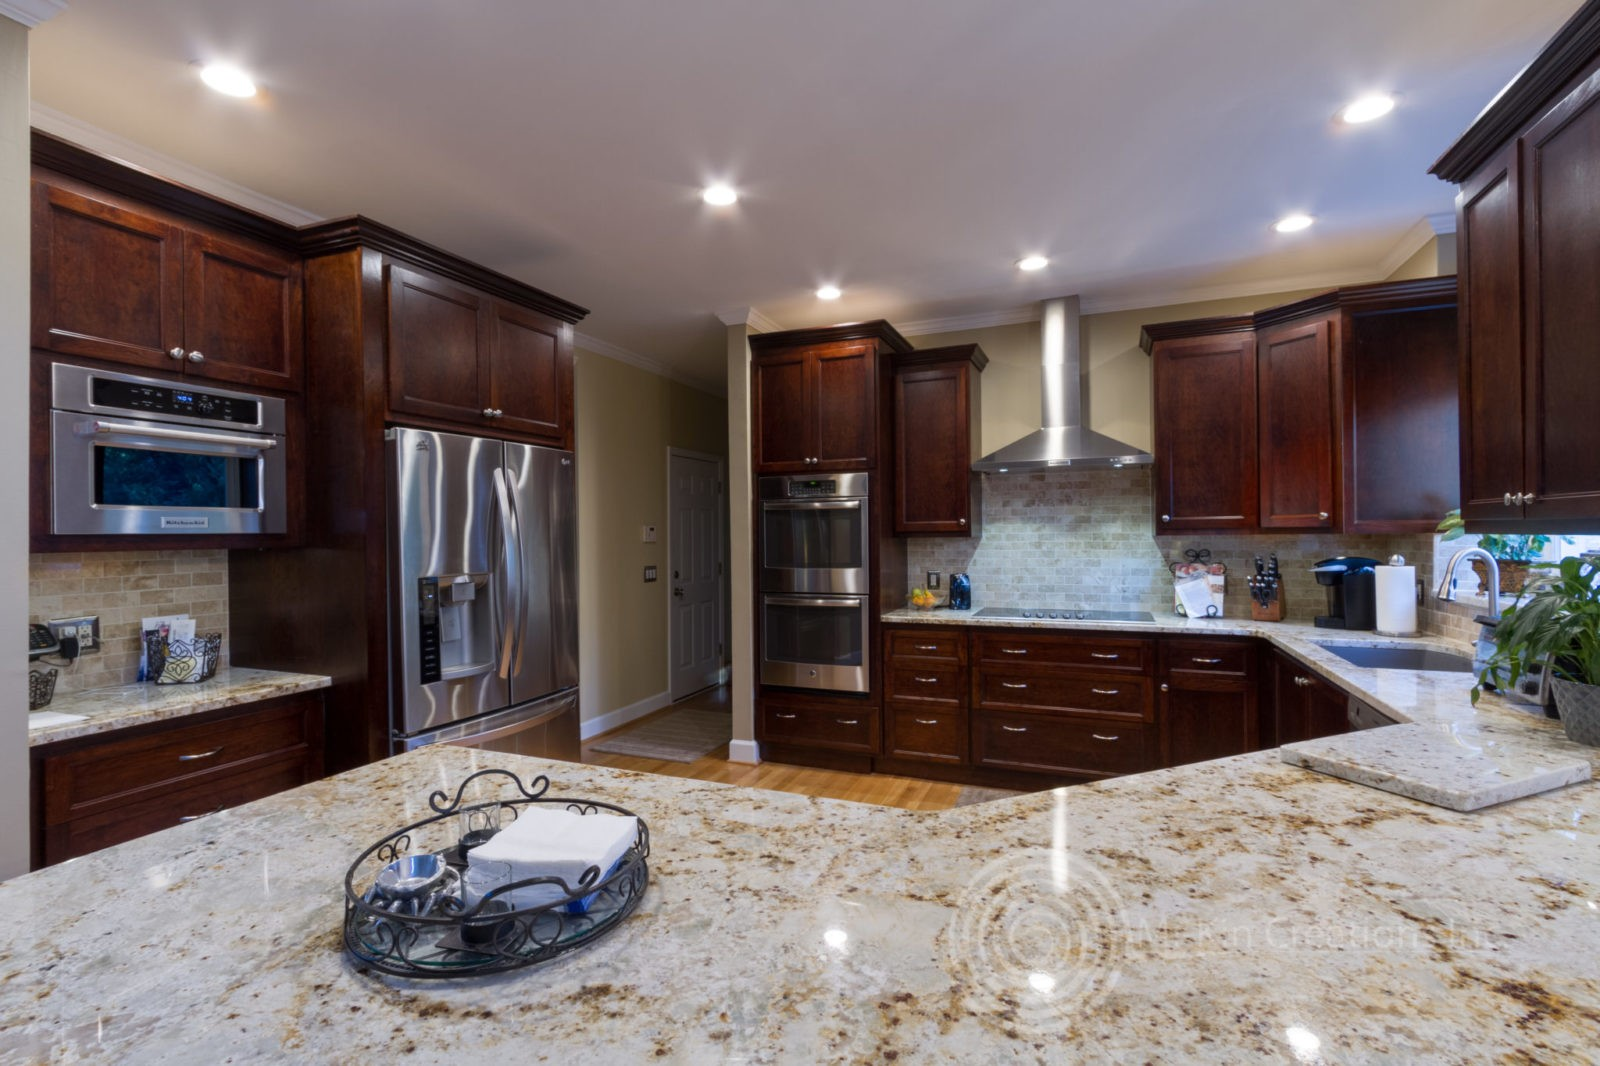 Full view of traditional kitchen with dark stain and light granite countertops.